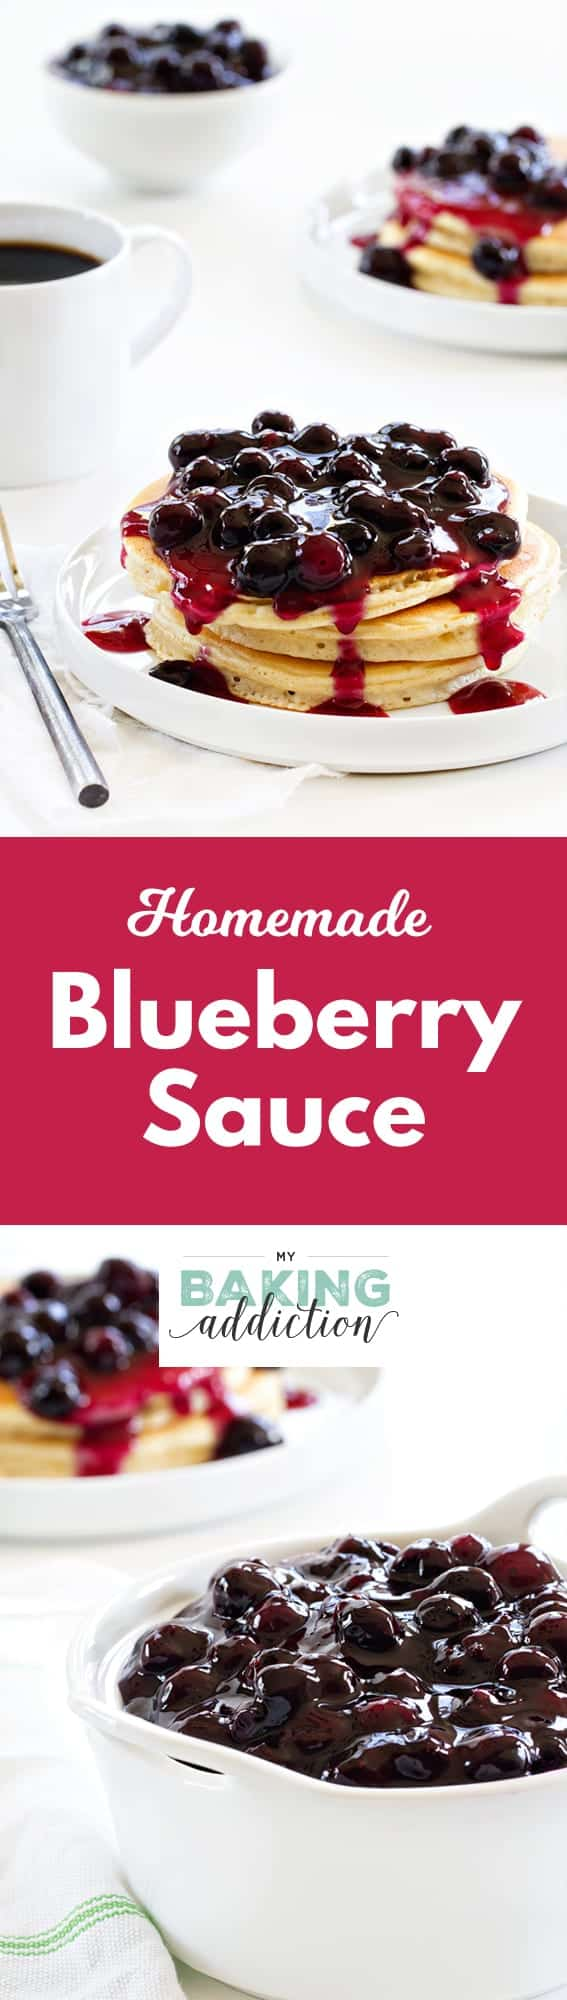 ... sauce homemade xo chinese sauce homemade blueberry sauce homemade